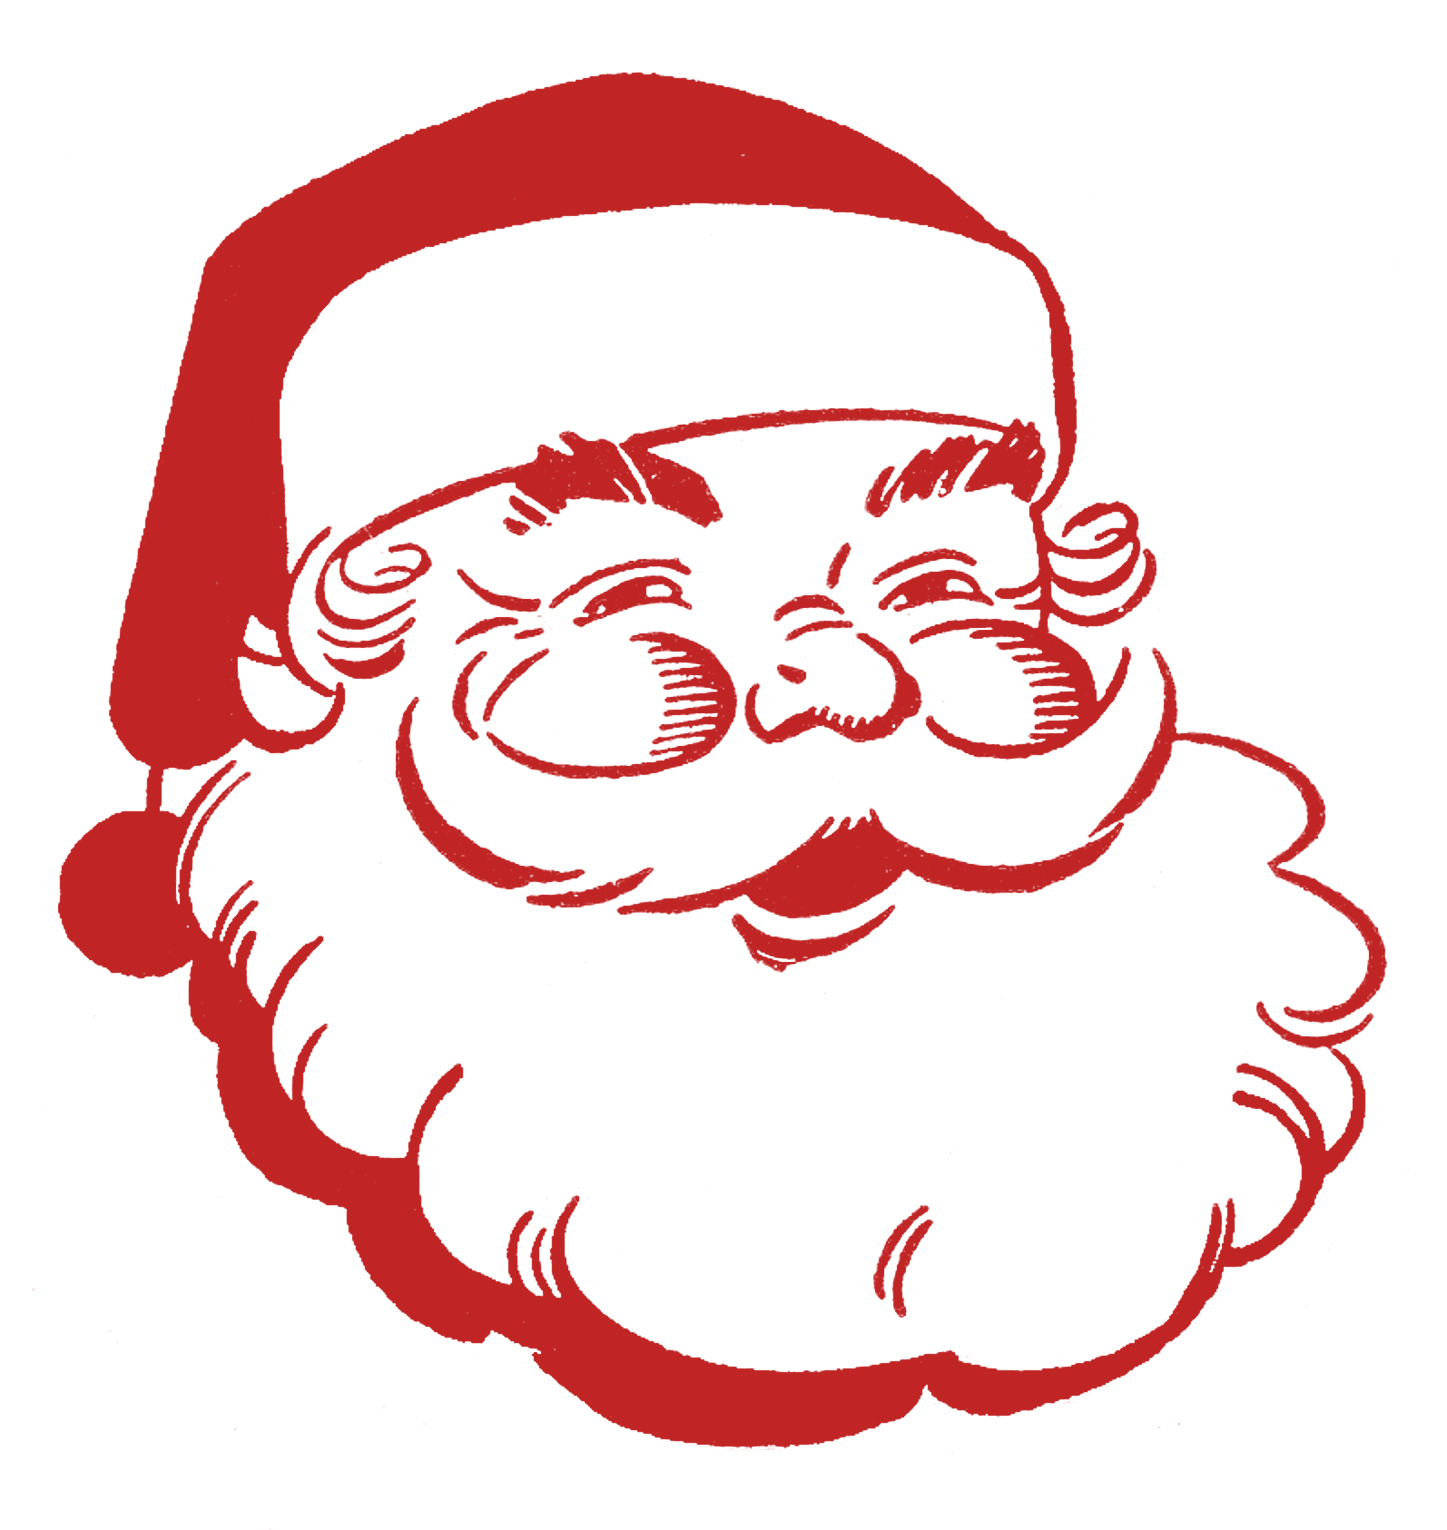 Retro Christmas Clip Art - Jolly Santa - The Graphics Fairy